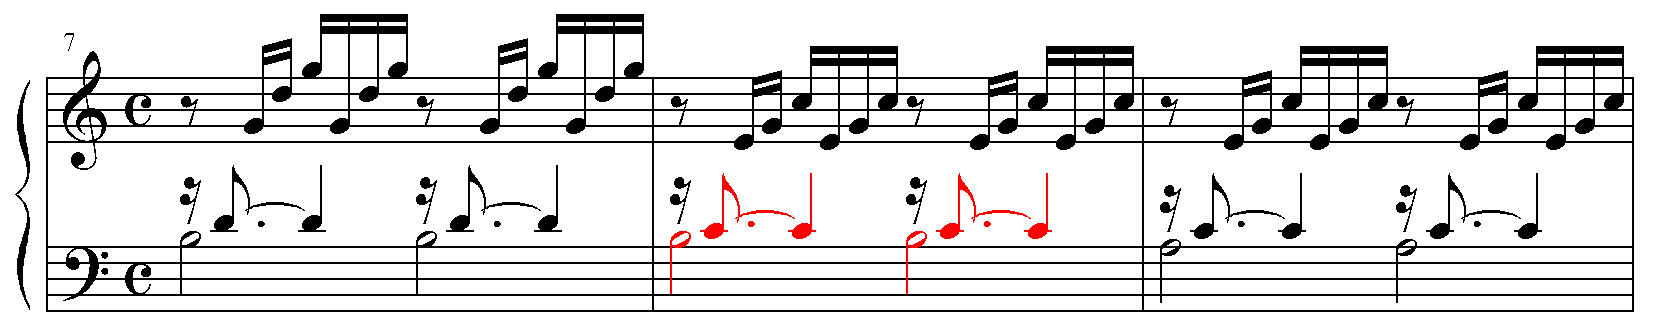 Music theory wiki musical scales harmony fandeluxe Gallery